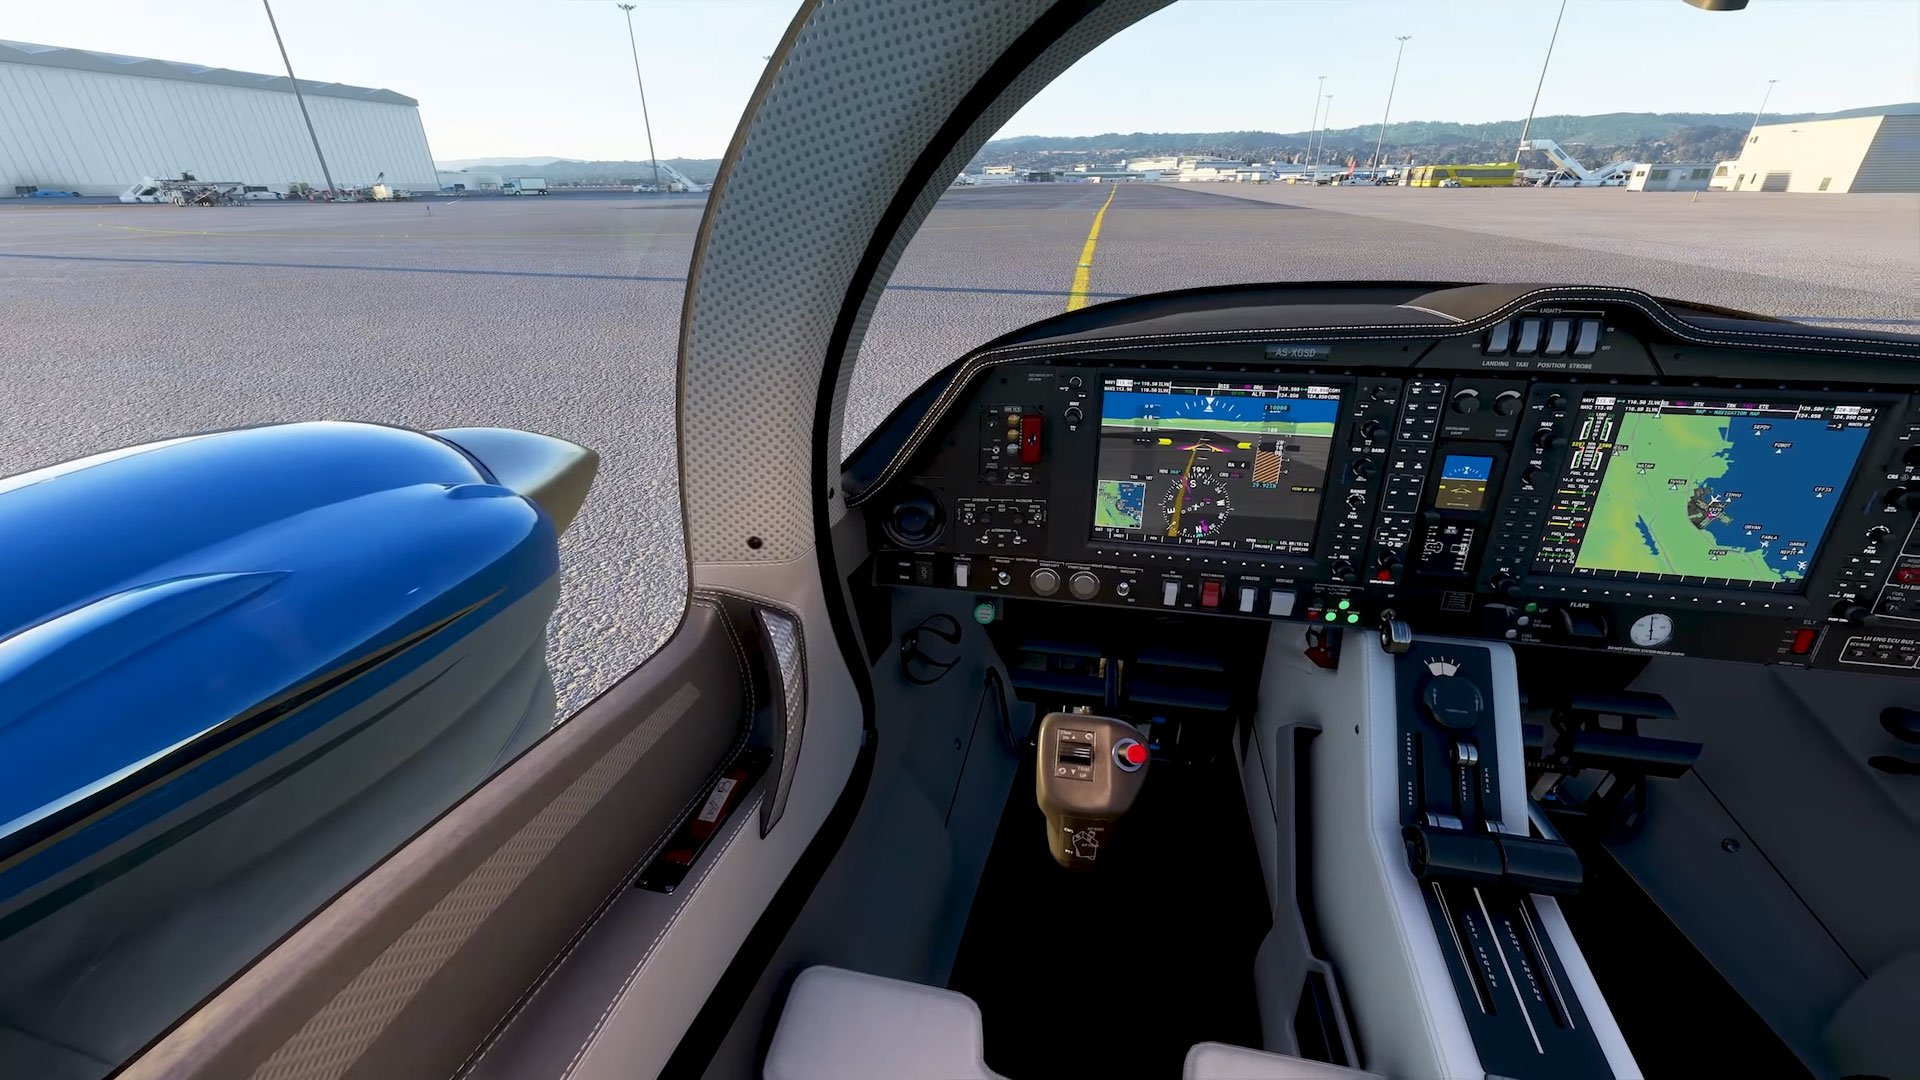 Microsoft Flight Simulator's next big update will focus on the UK